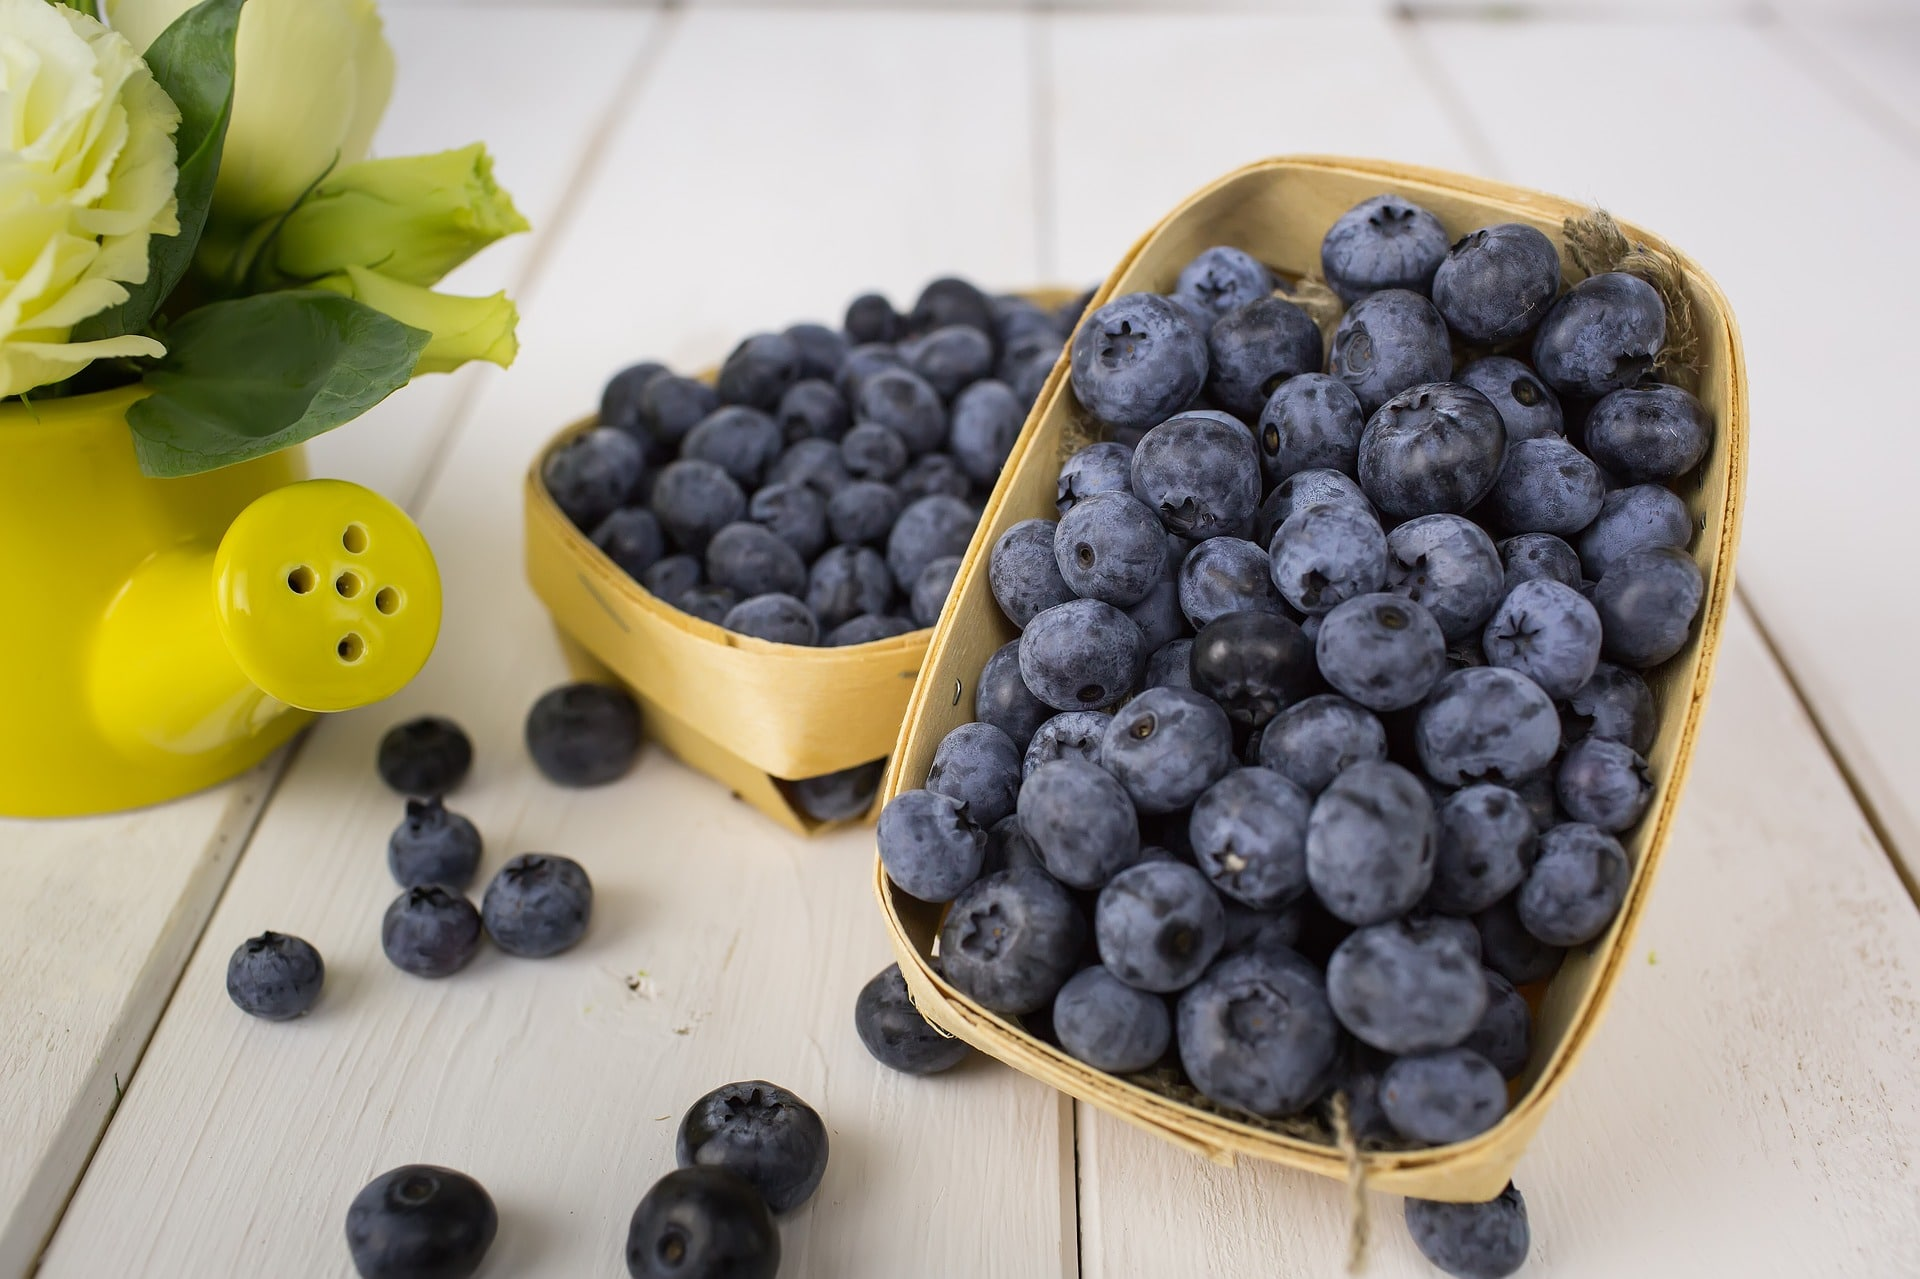 10 Benefits Of Blueberries